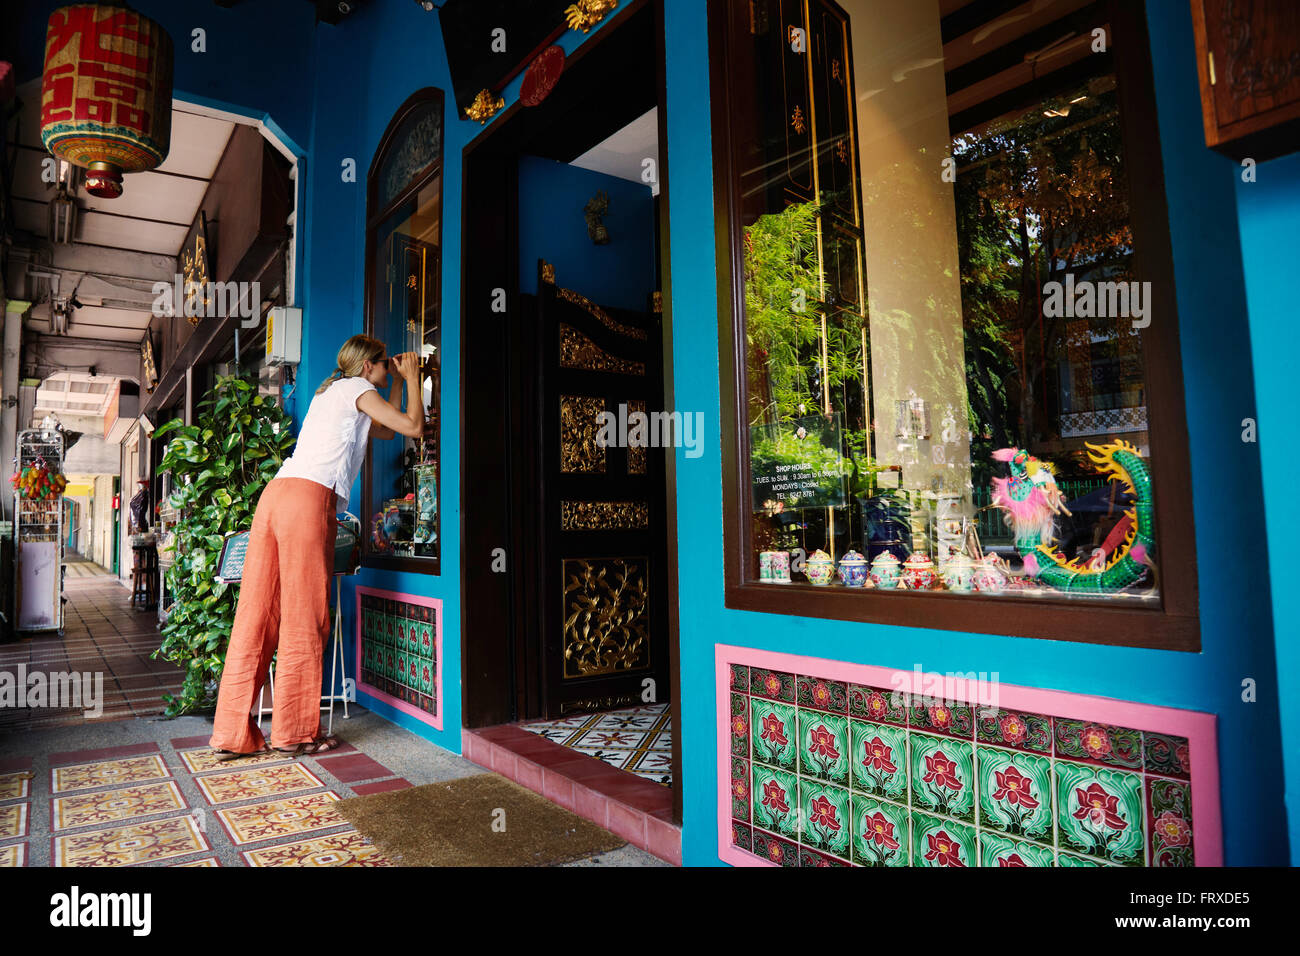 Woman looking throuhg a shopwindow of an antique shop, Chinatown, Singapore - Stock Image